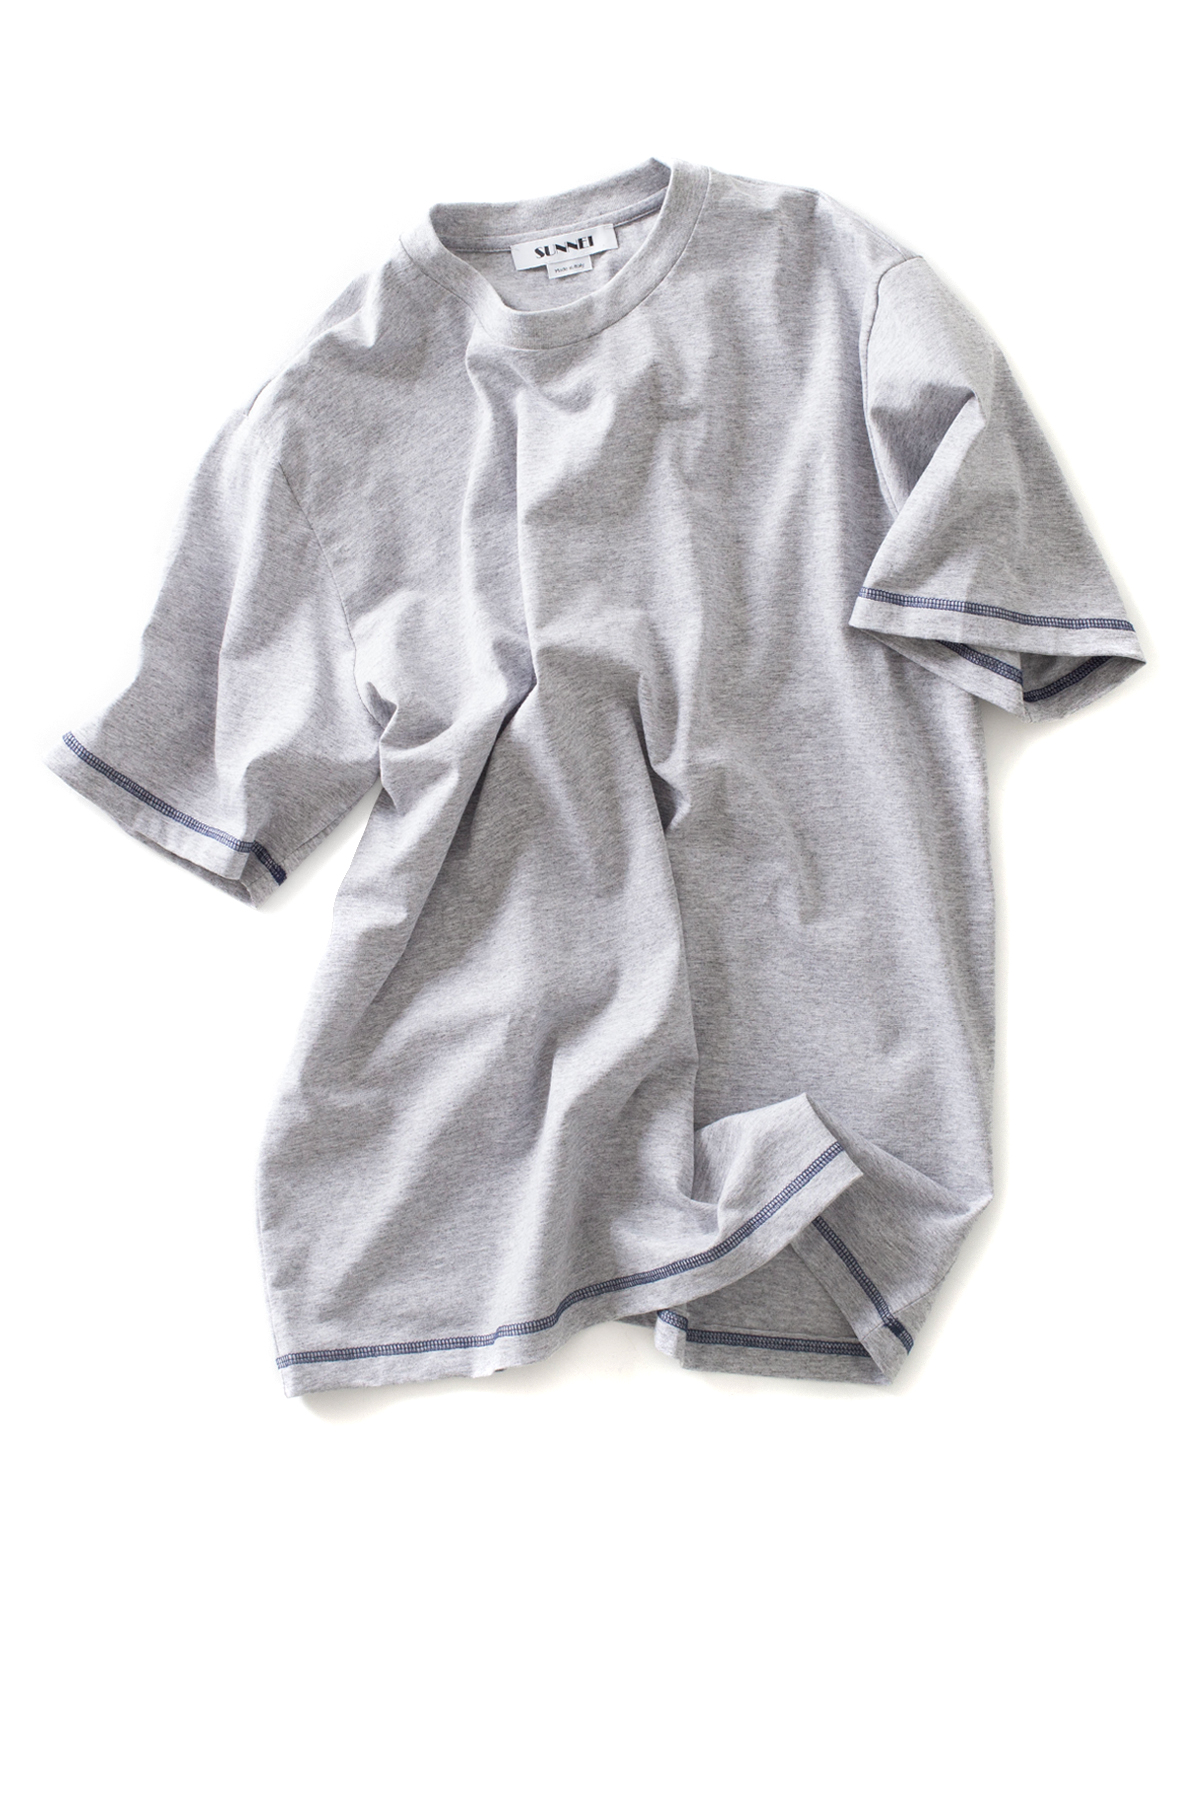 SUNNEI : Basic T-Shirt (Grey)